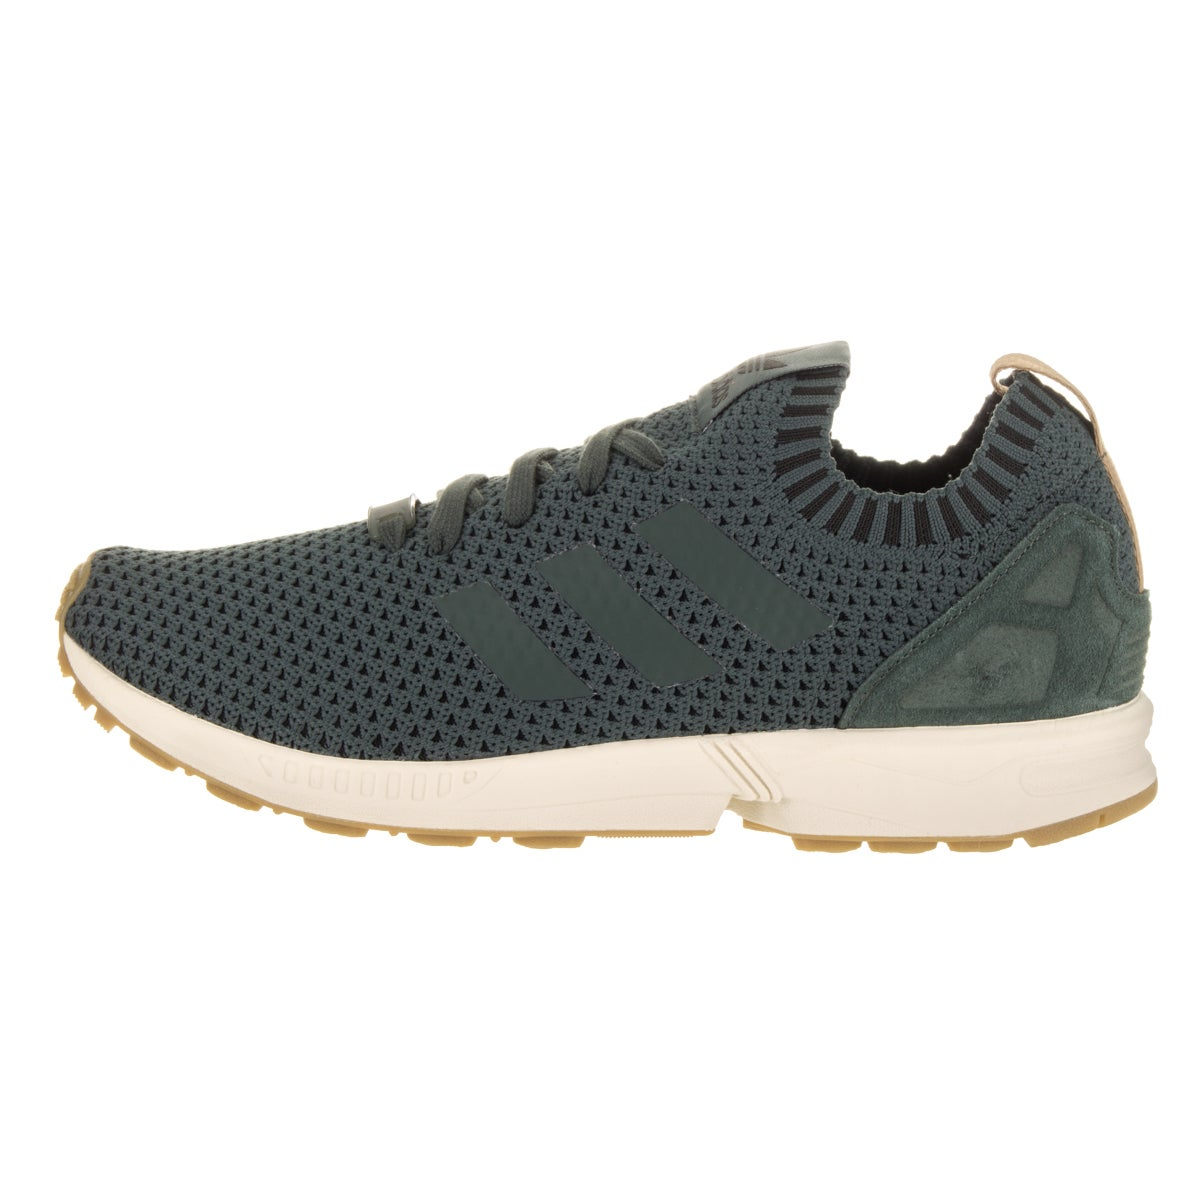 7f7b5c4ec get adidas zx flux el toddlers style af6260 cc4bb 59011  coupon for shop  adidas mens zx flux pk originals green textile casual shoes free shipping  today